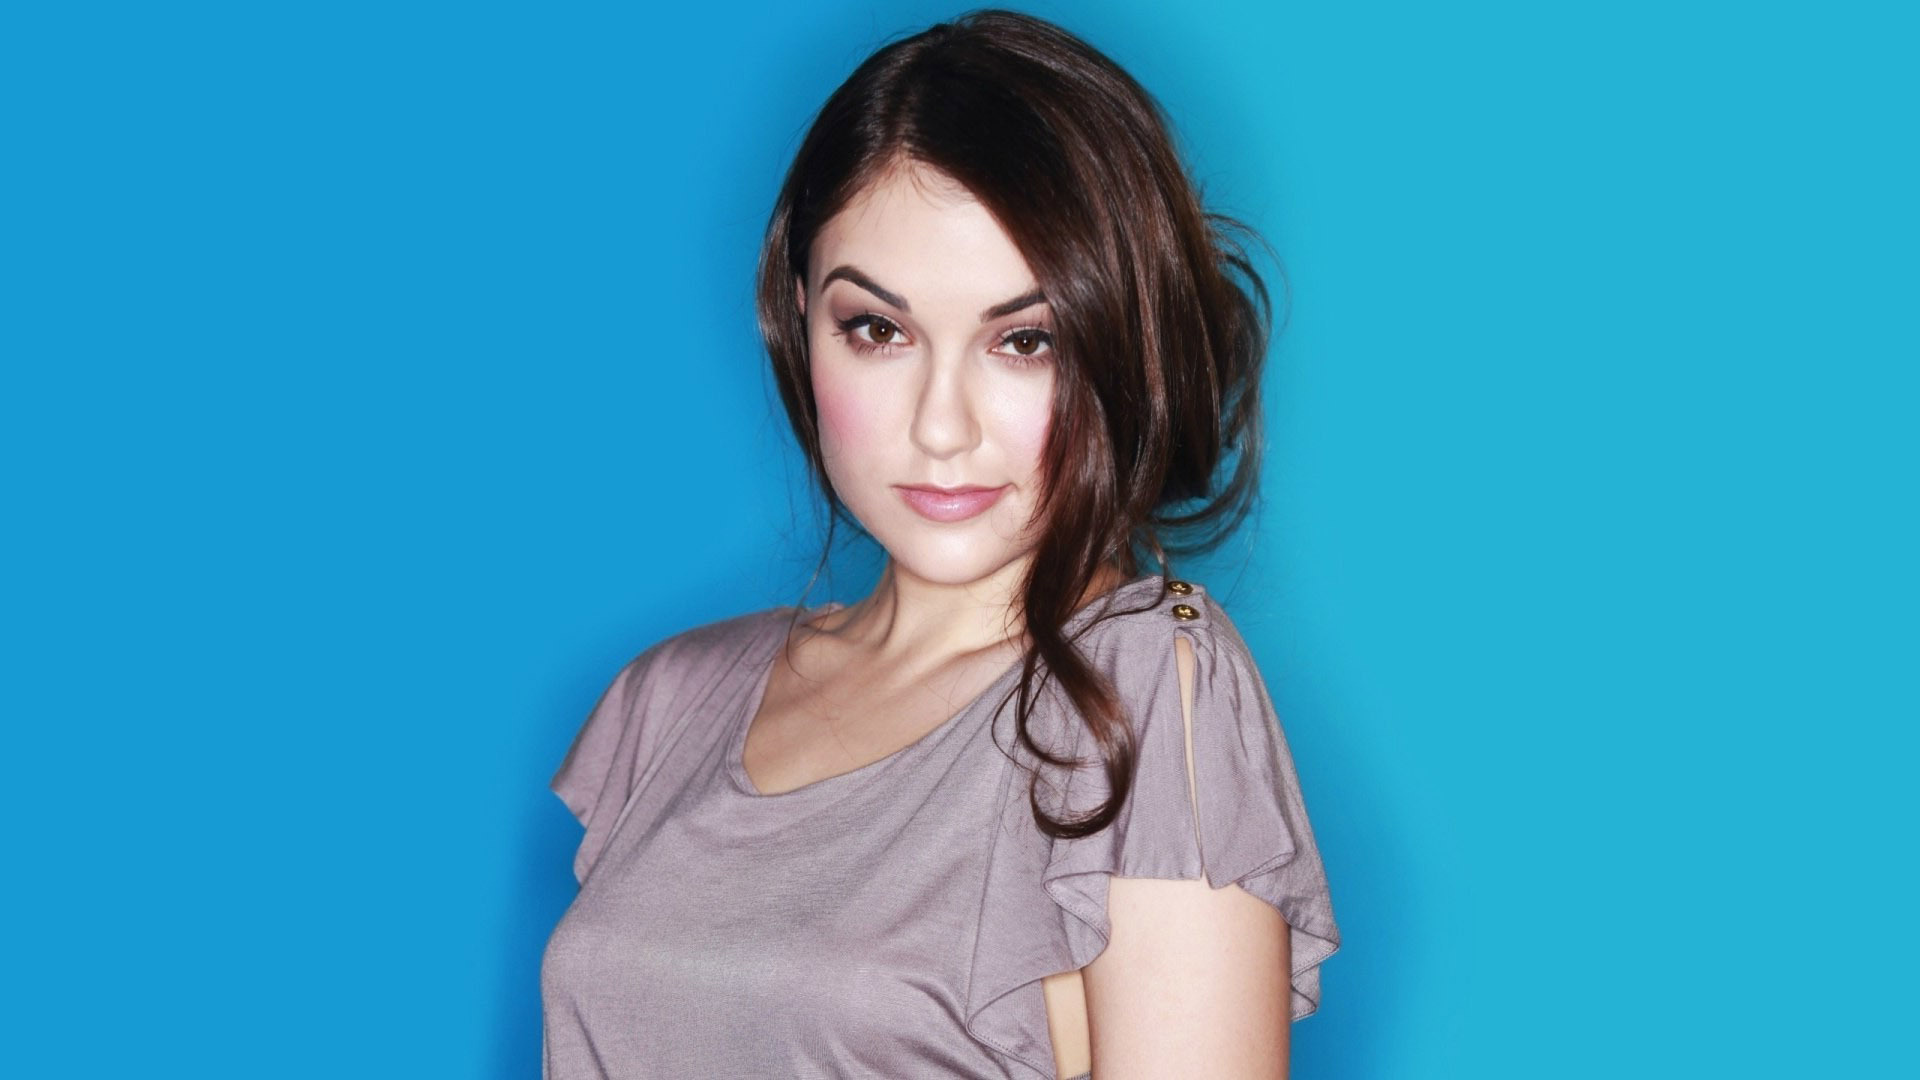 Sasha Grey Wallpapers